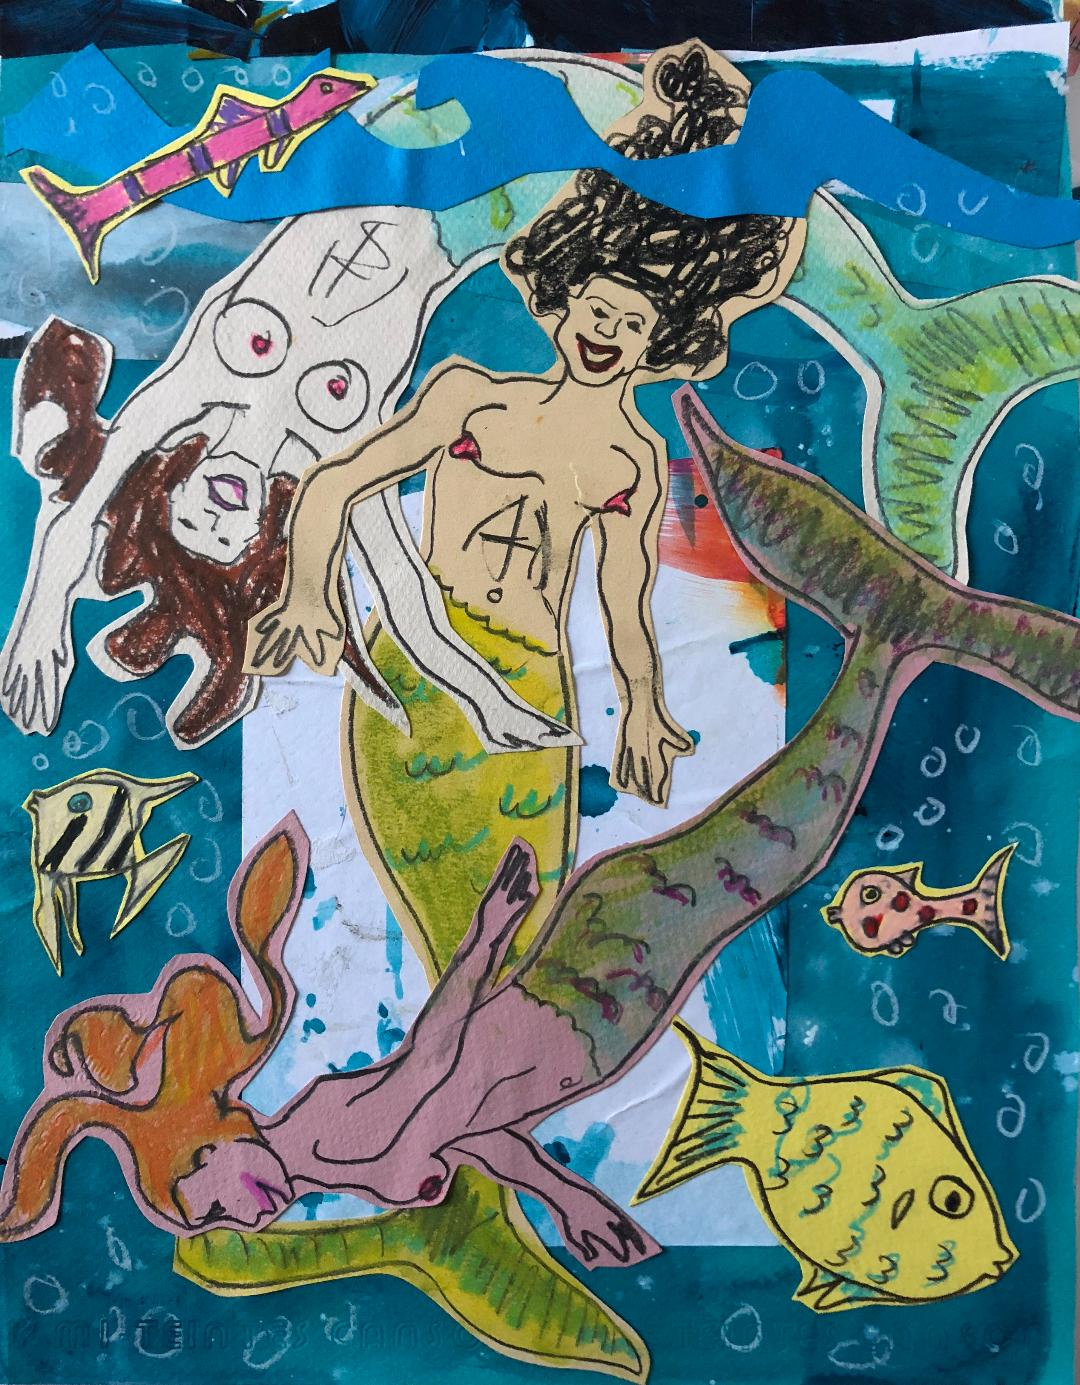 sunde white illustrates her essay about mermaids